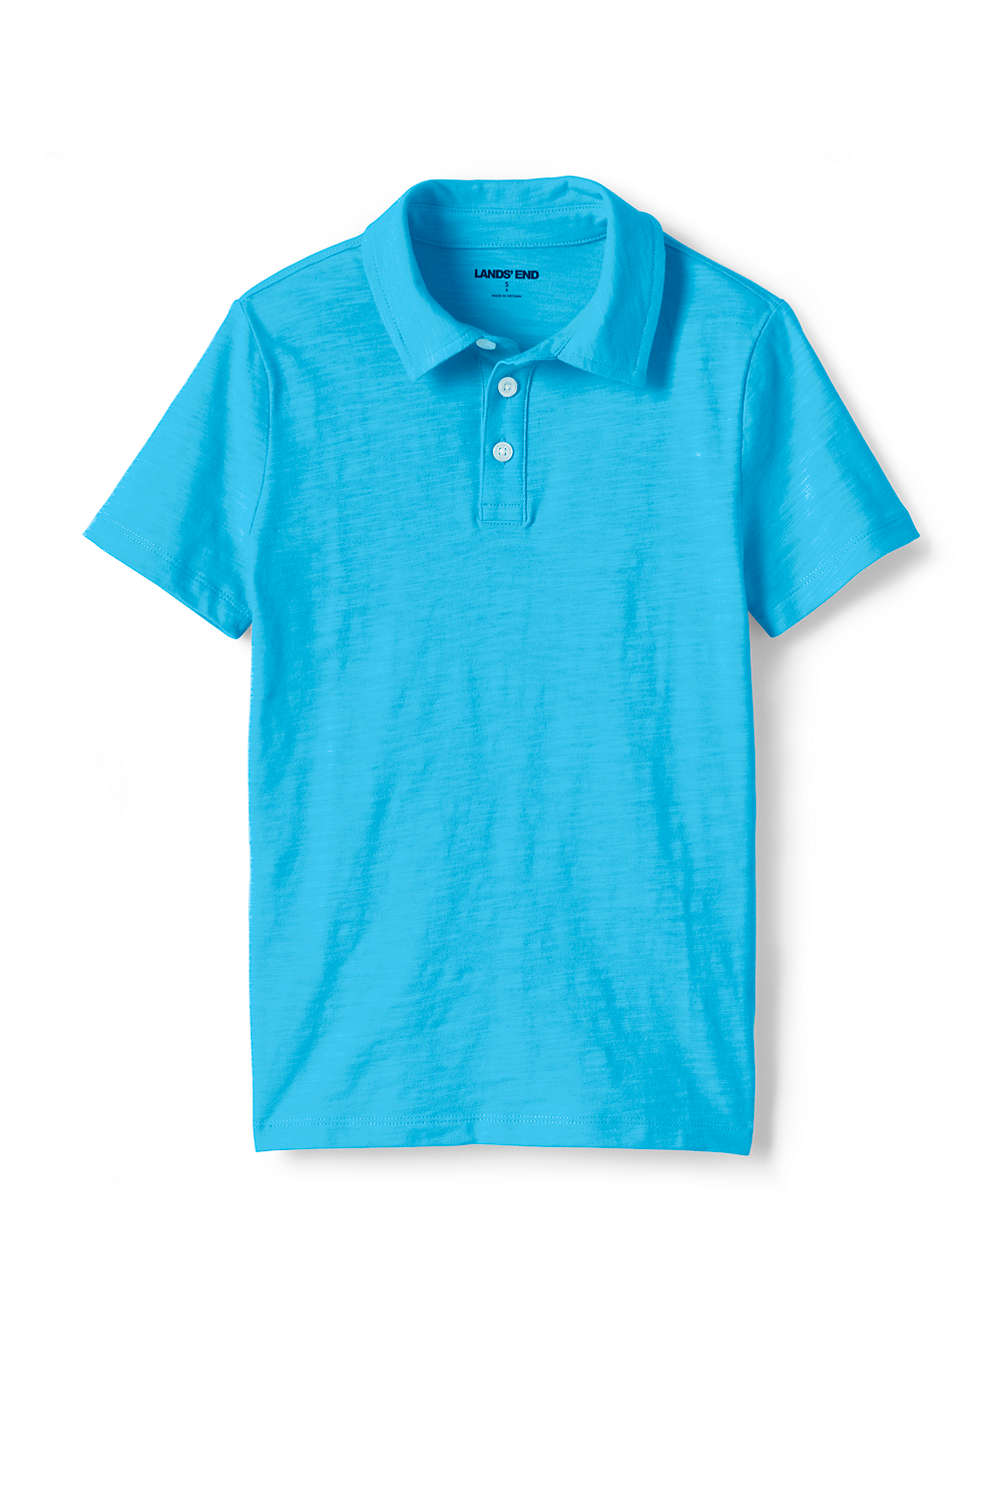 1a465ef10 Toddler Boys Solid Slub Polo Shirt from Lands' End